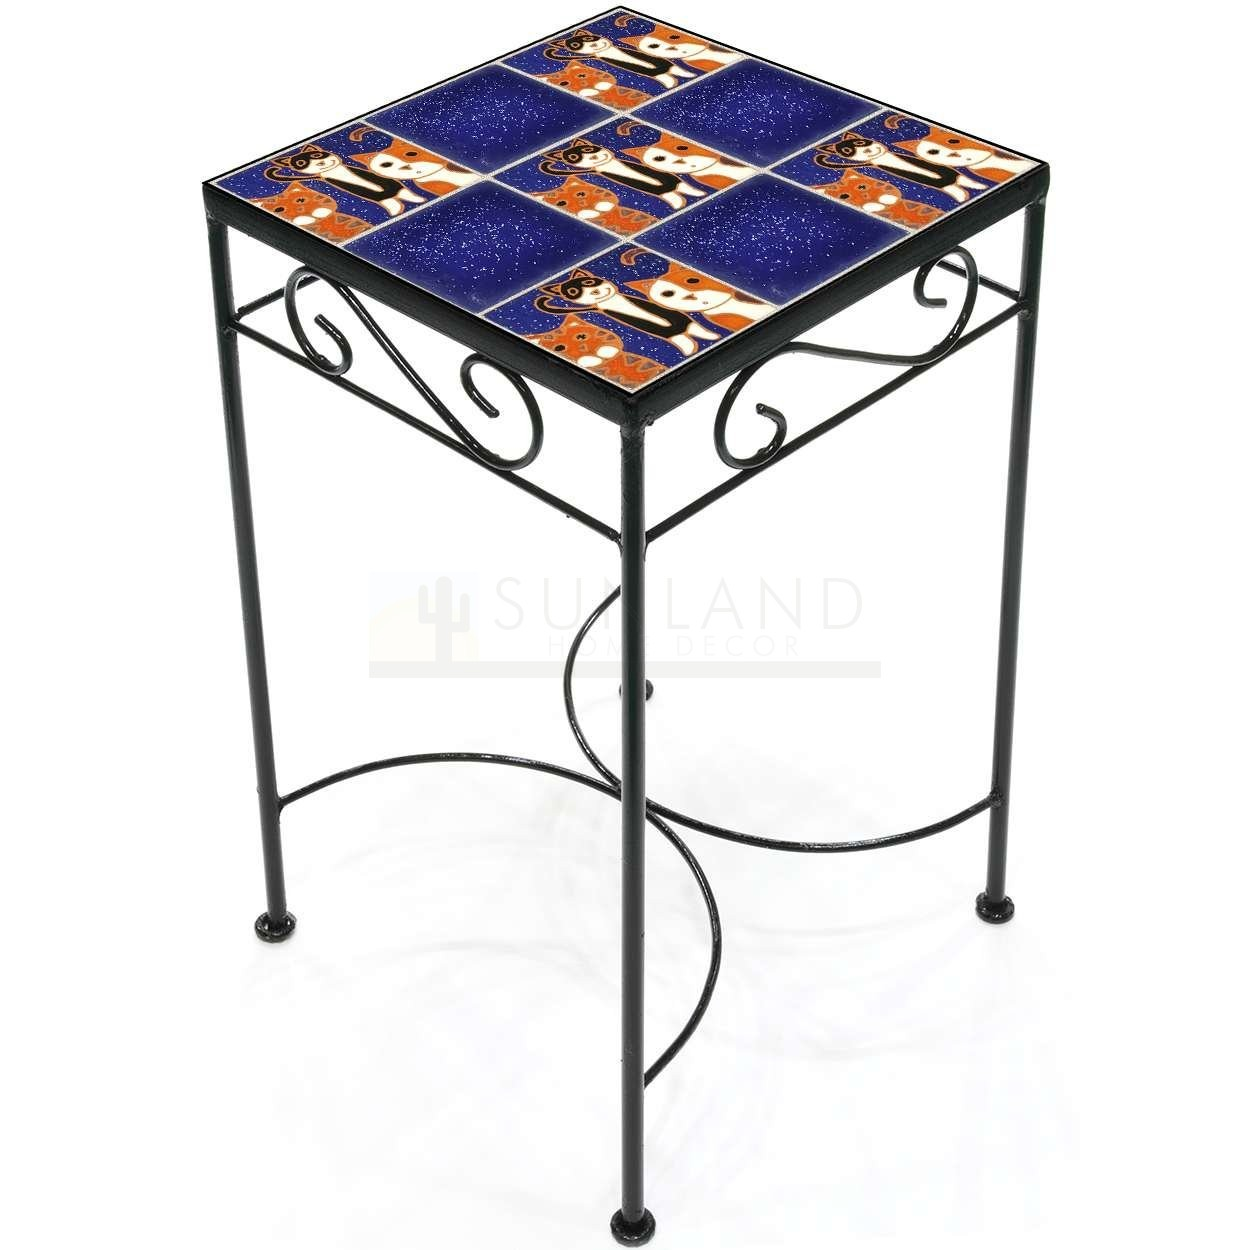 tile accent table kitties night tall square metal and small kitchen chairs narrow drop leaf glass lamps hardwood floor threshold unique wood coffee tables acrylic console ikea